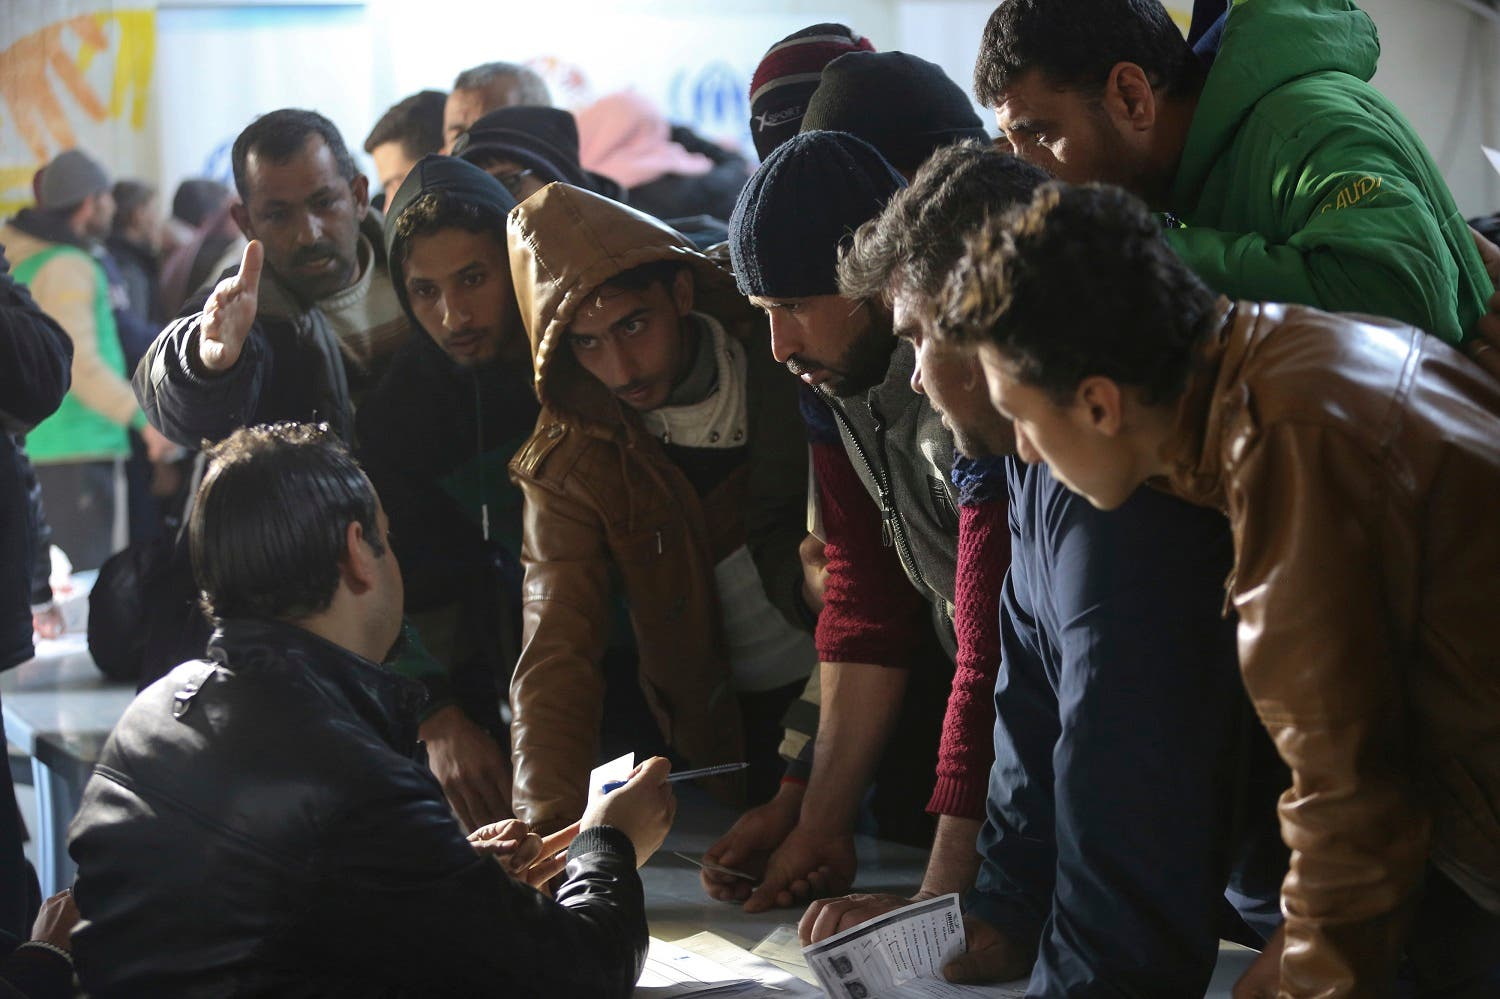 Syrian refugees register at an employment office at the Azraq Refugee Camp on Feb. 18, 2018. (AP)